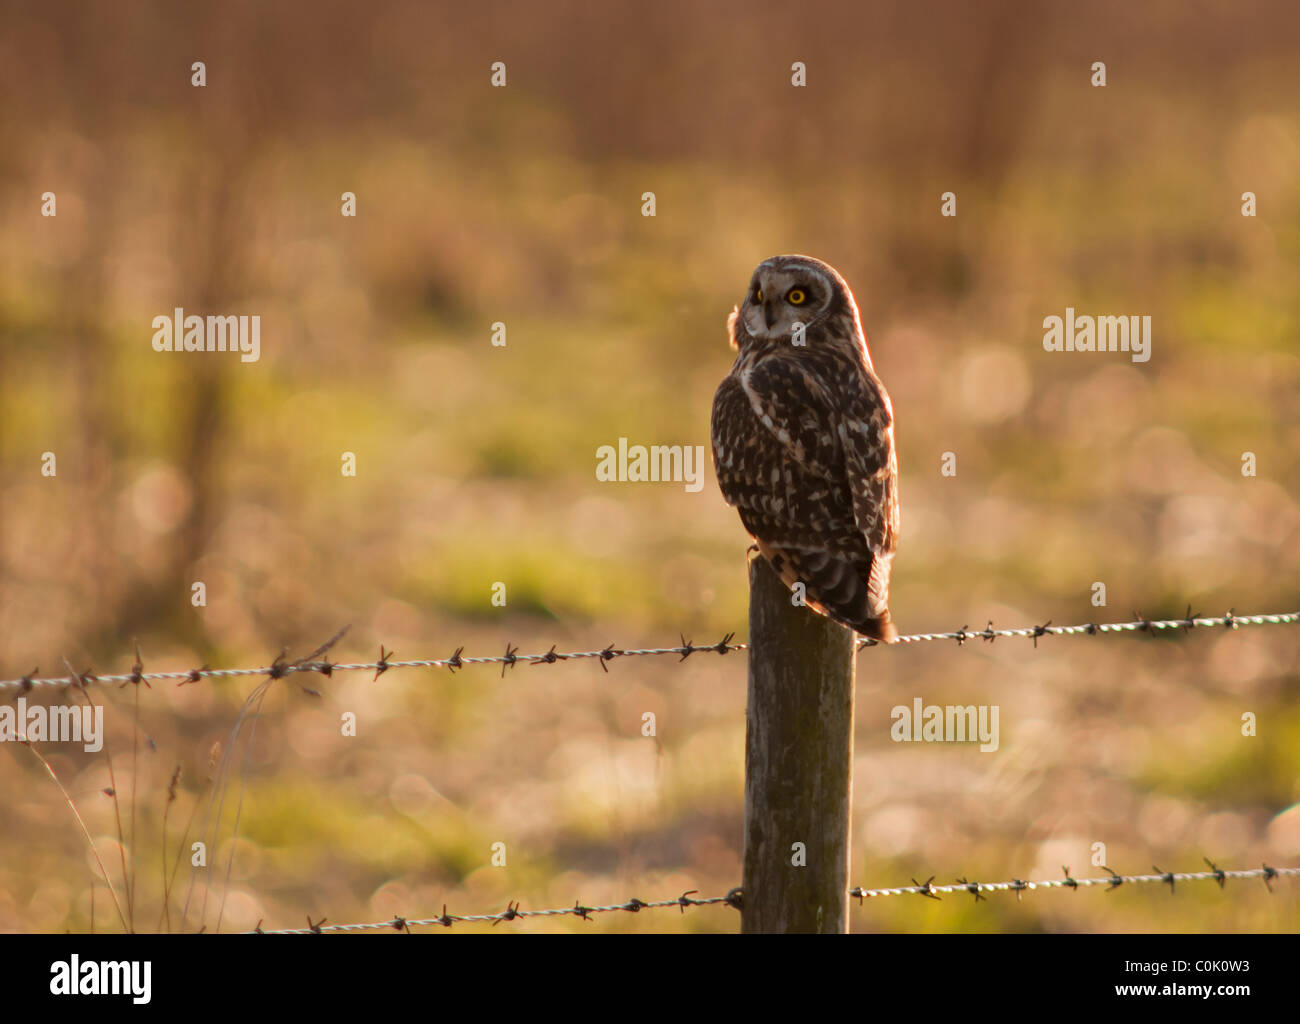 Wild Short Eared Owl perched on wooden fence post in North Lincolnshire Stock Photo